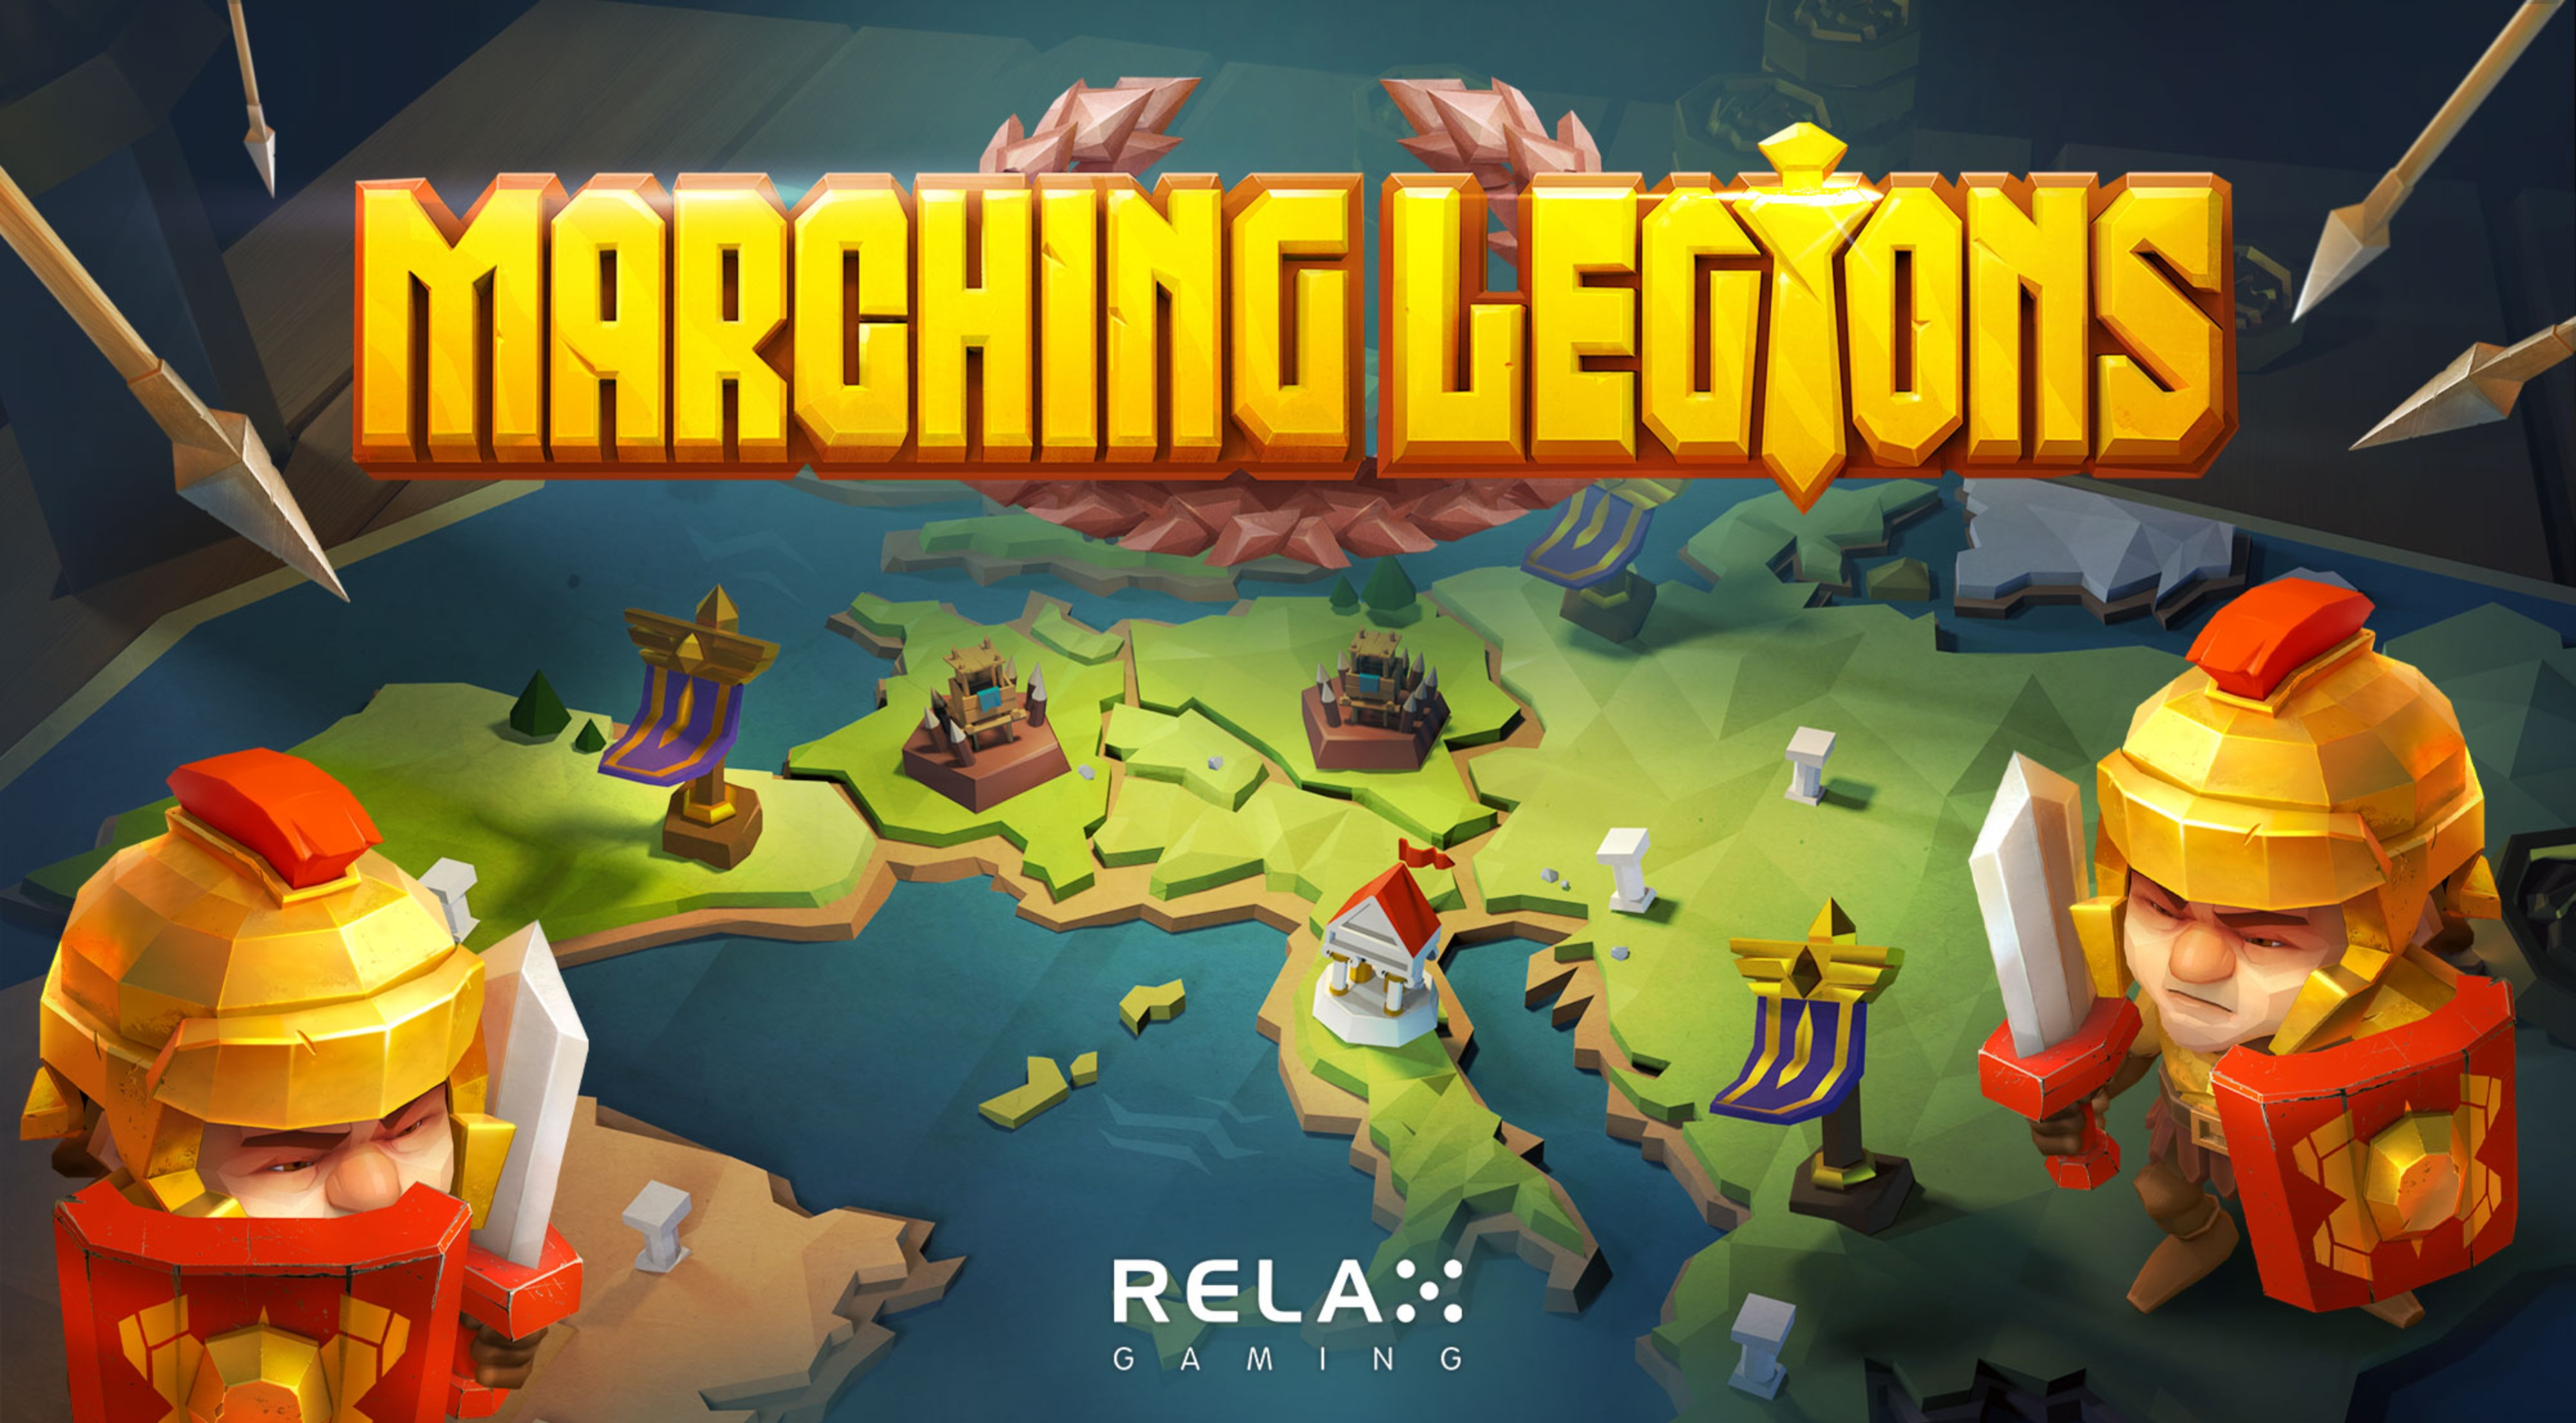 The Marching Legions Online Slot Demo Game by Relax Gaming